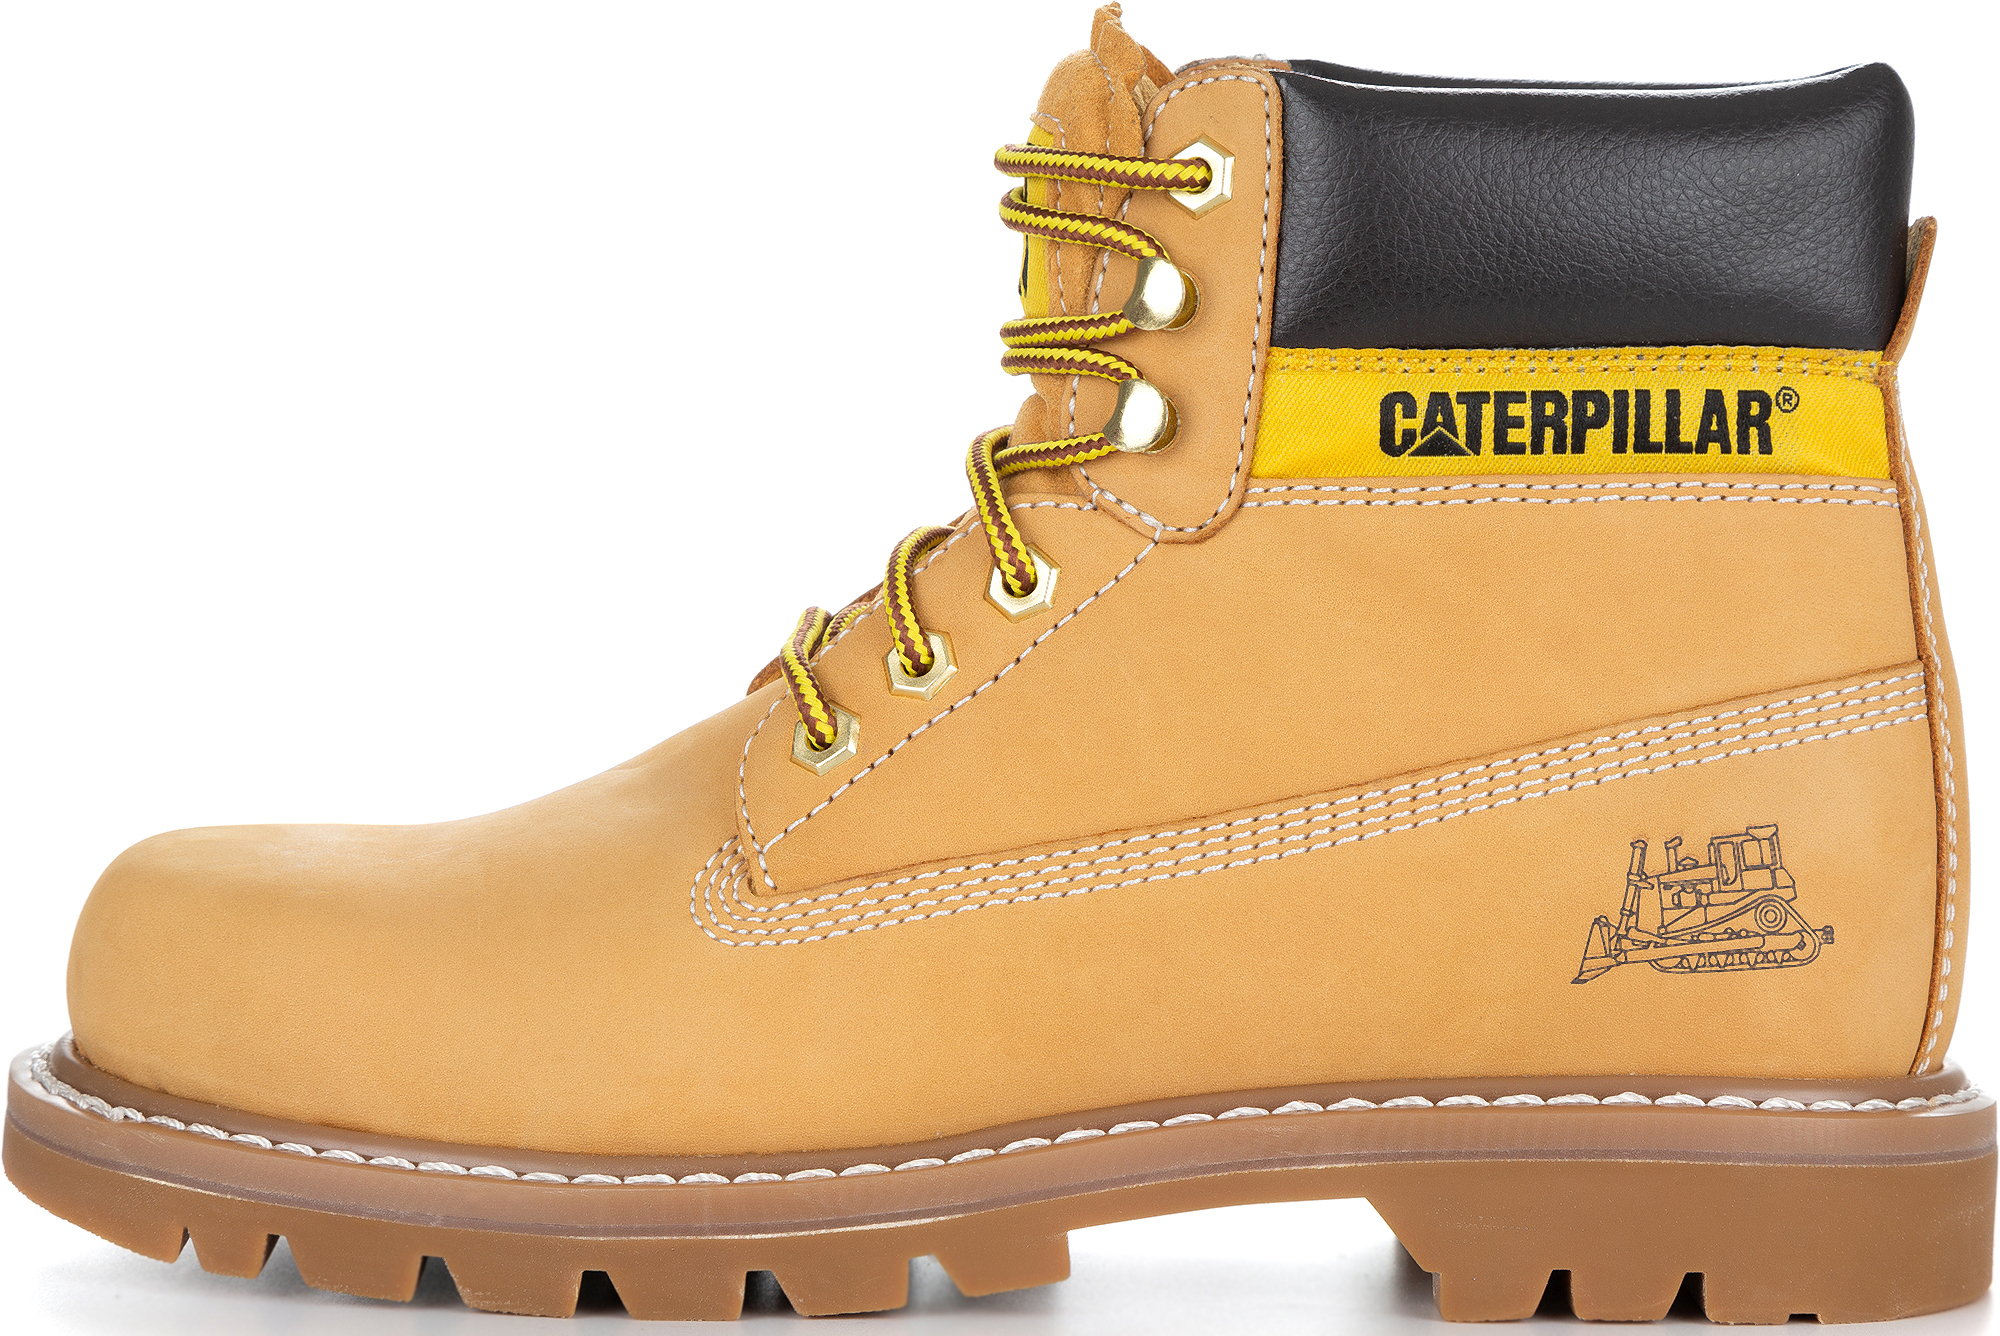 Caterpillar Ботинки мужские Caterpillar Colorado, размер 45 цена